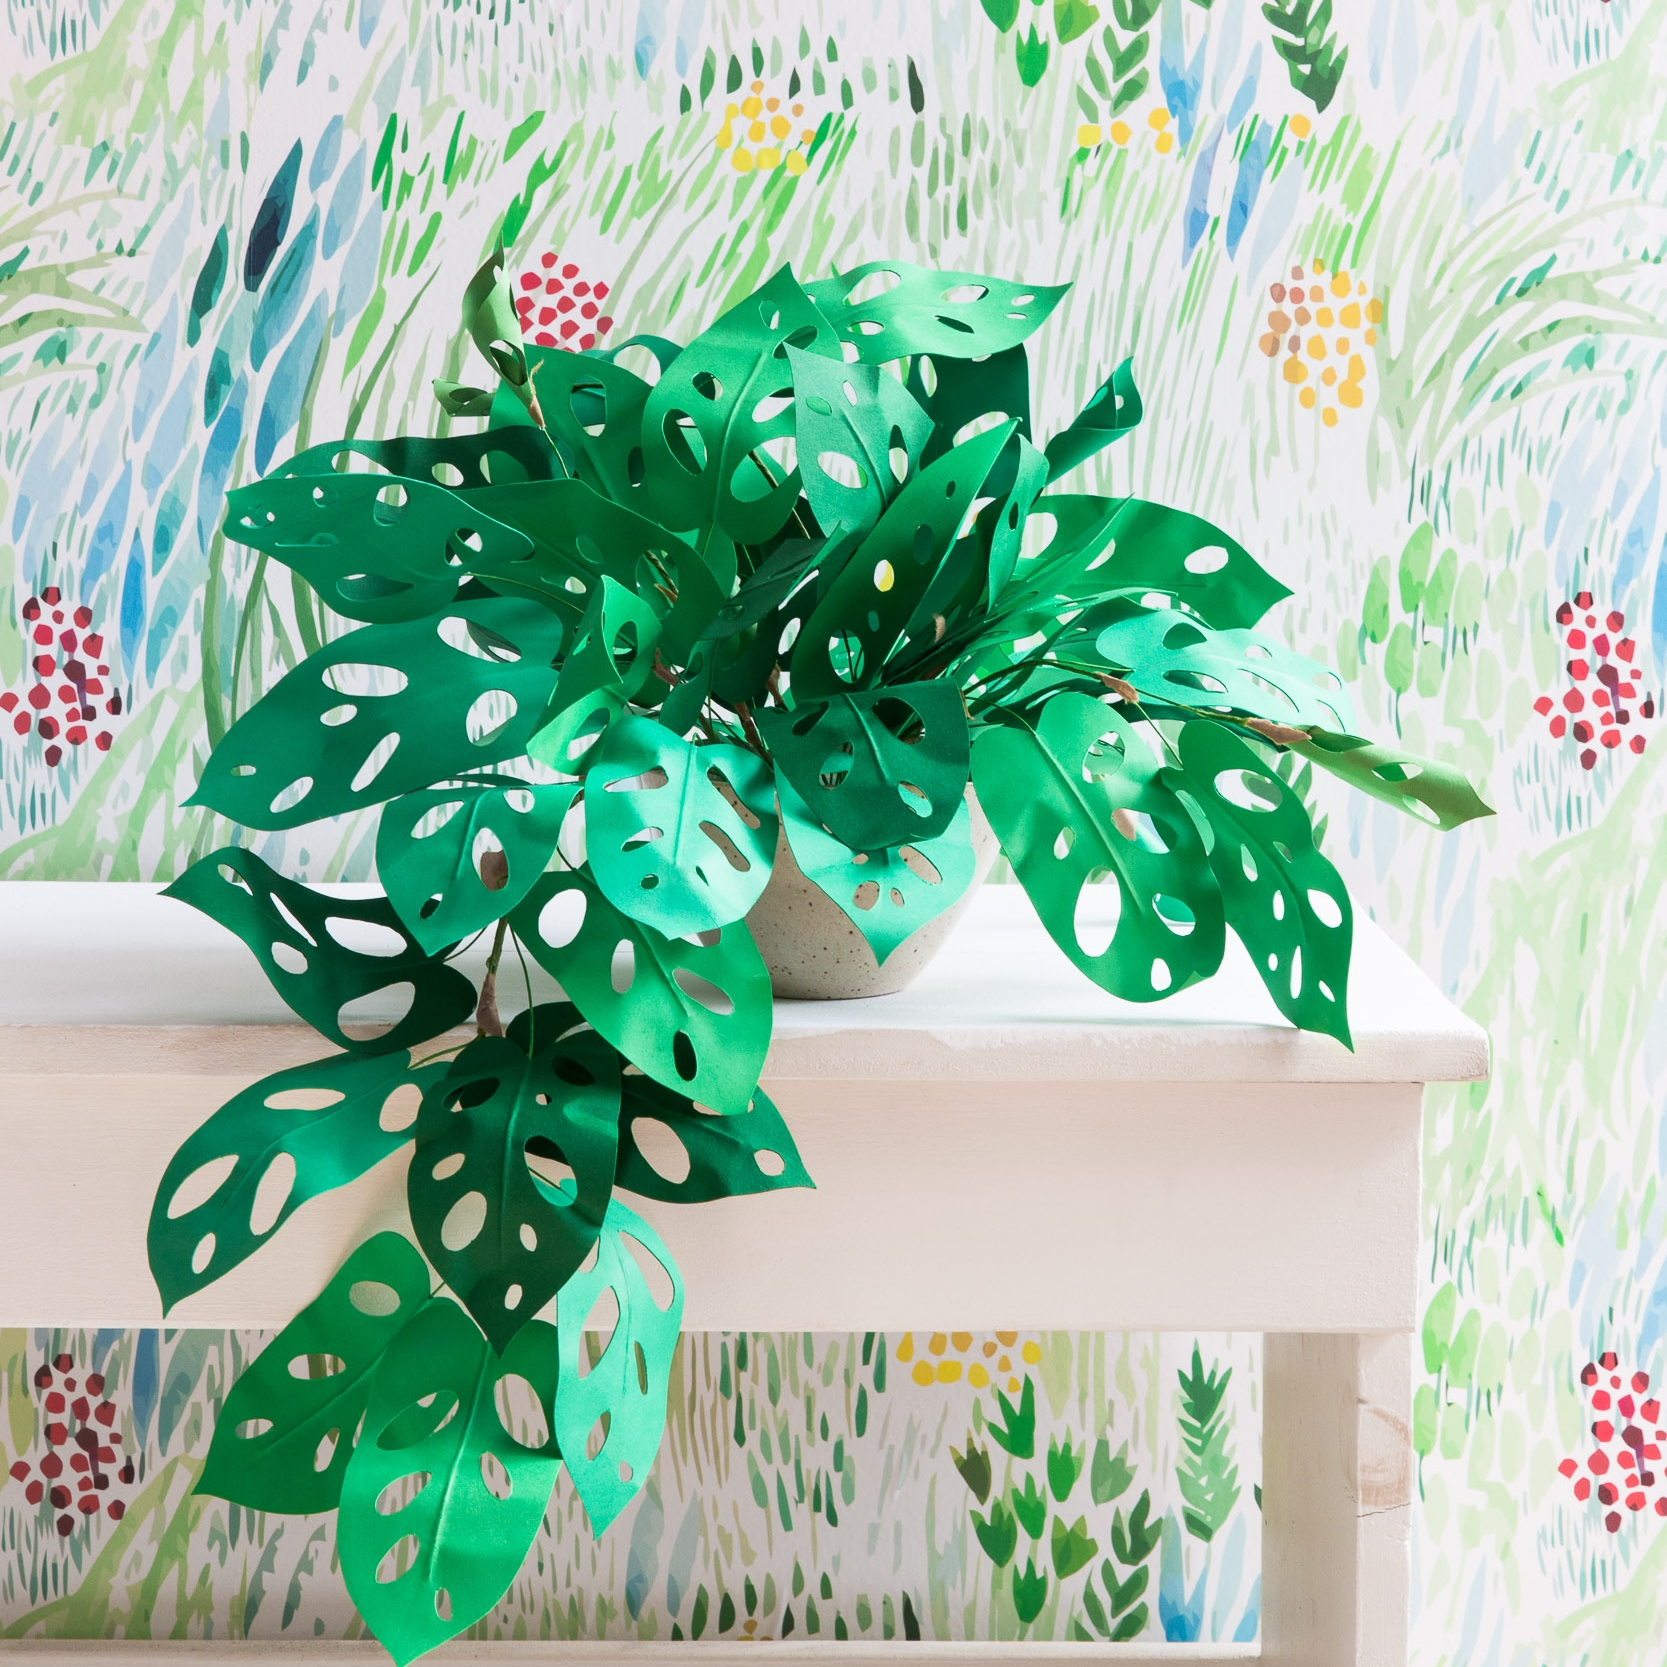 Corrie Beth Hogg + DIY Tutorial - Corrie Beth Hogg is a lifelong maker. She is currently crafting realistic plants out of paper, and has recently published a book on the subject entitled, Handmade Houseplants: Remarkably Realistic Plants You Can Make with Paper. Corrie has long been inspired by nature, from growing up near a national park to a season spent working the fields at an organic farm, she has always strived to integrate the natural world into her creative process. She studies plants, interpreting their visual signatures and details into digestible, clear steps, showing those with even the blackest of thumbs how to recreate them with paper.